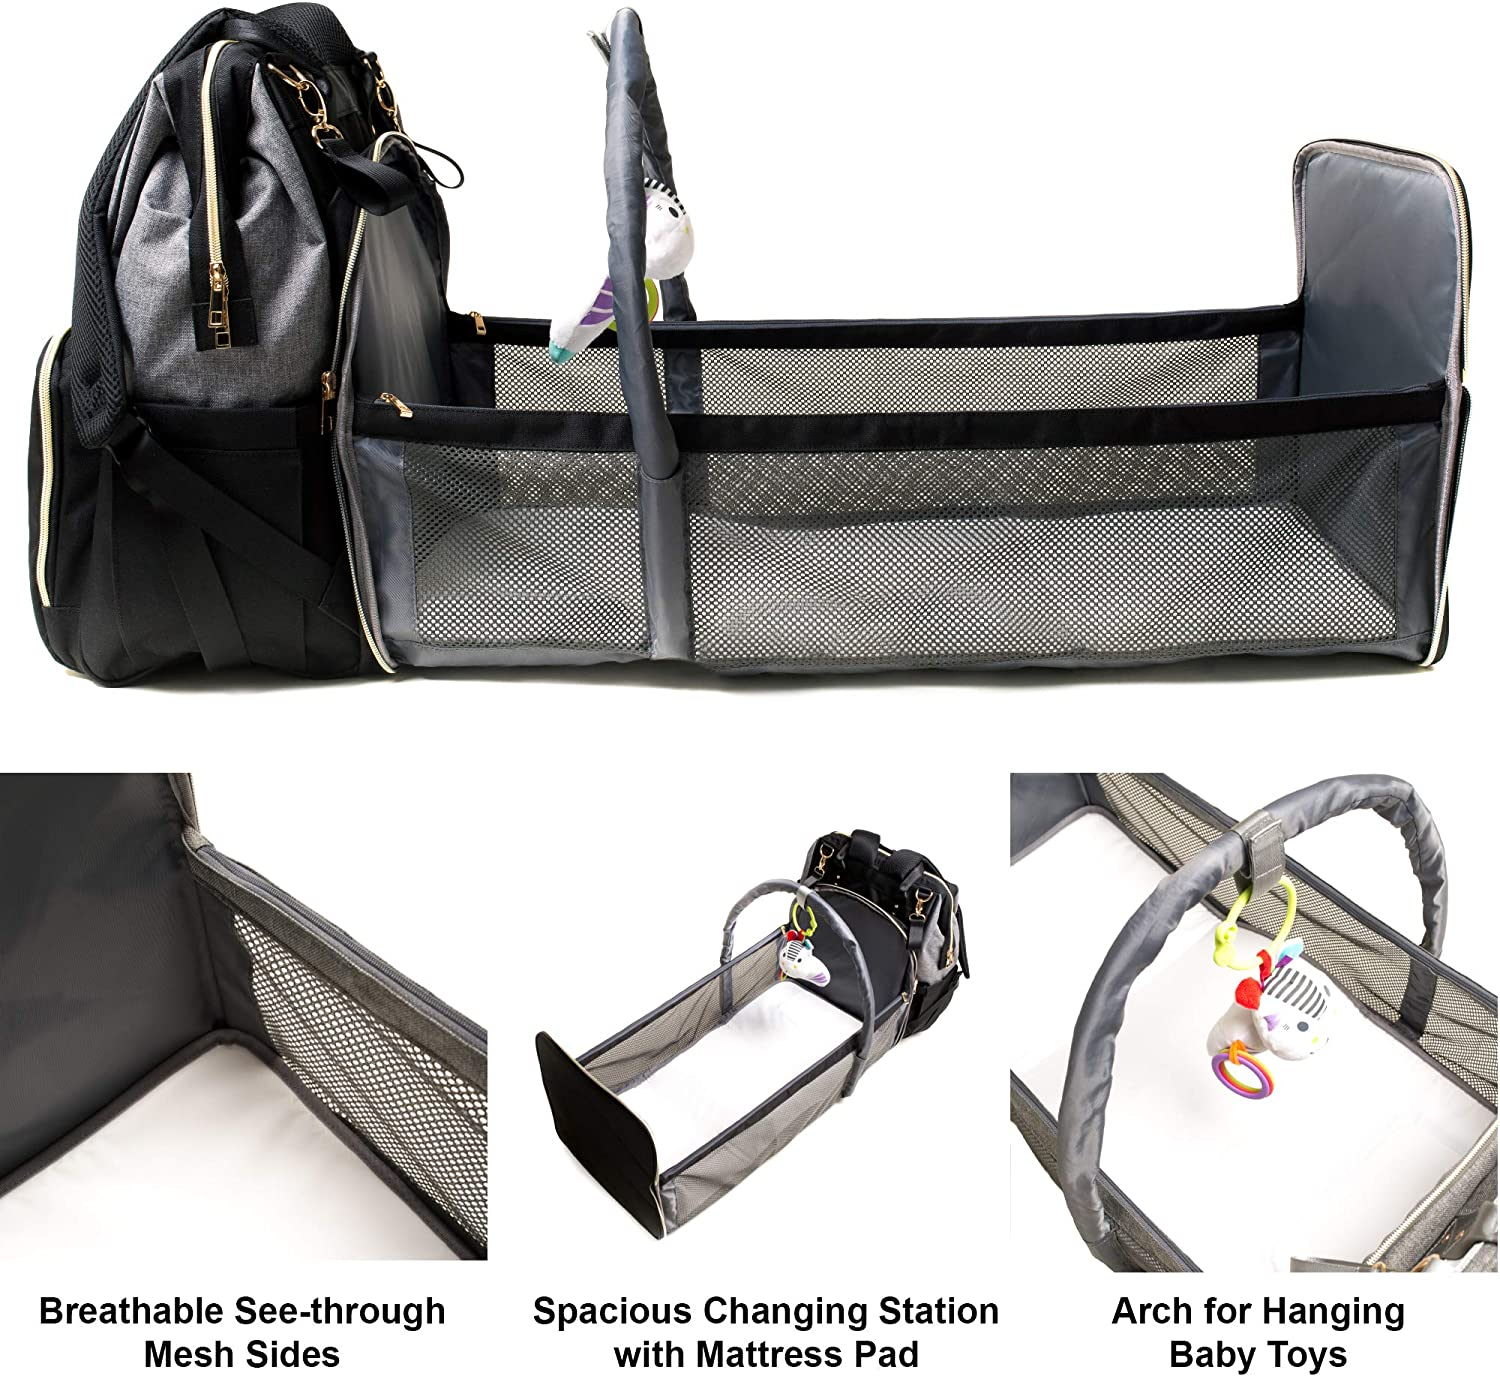 Baby Diaper Bag Backpack Bassinet by Piccoli   3-in-1   Travel   Changing Pad Station   Bed   Portable Crib   Foldable   Waterproof Multi-purpose Lightweight   Large (3-in-1, Black/Grey)